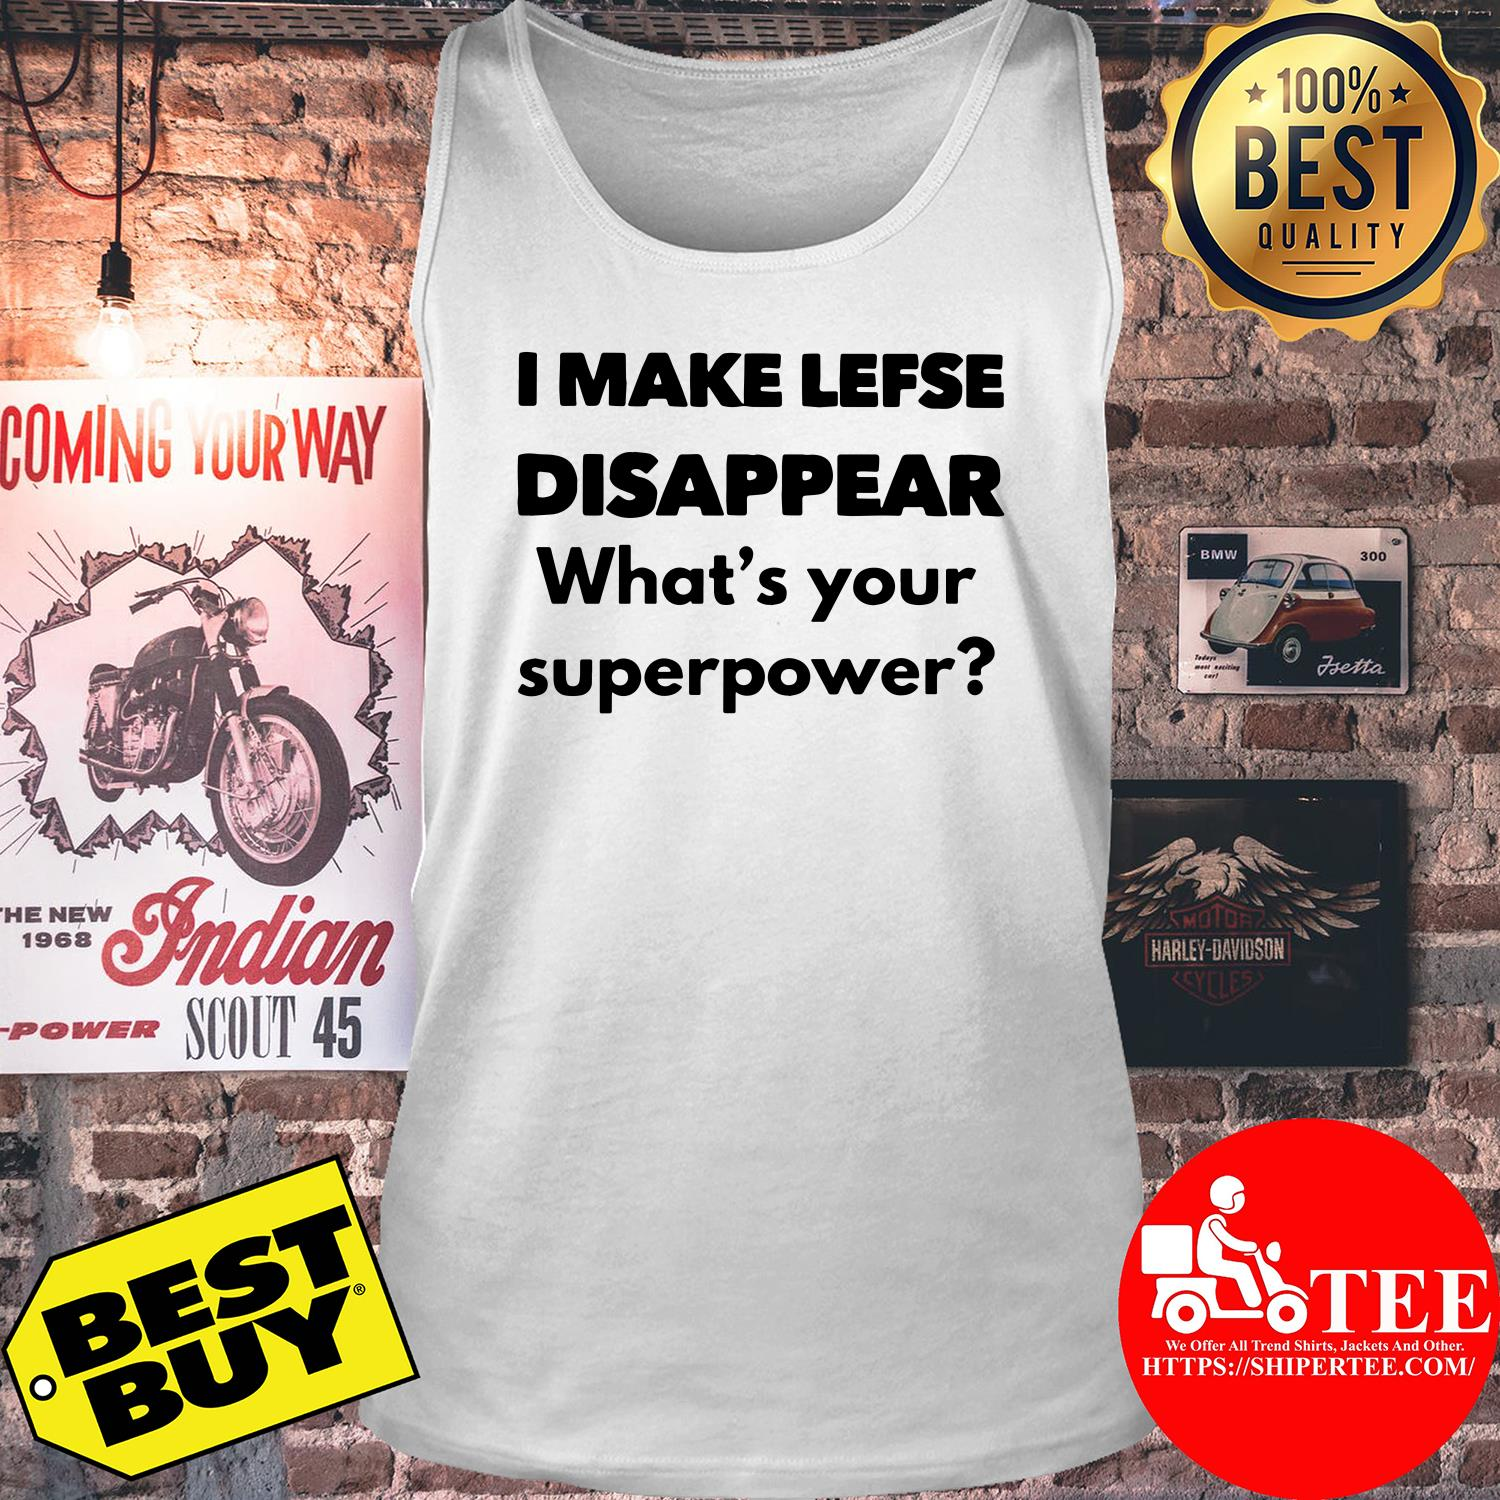 I make lefse disappear what's your superpower tank top